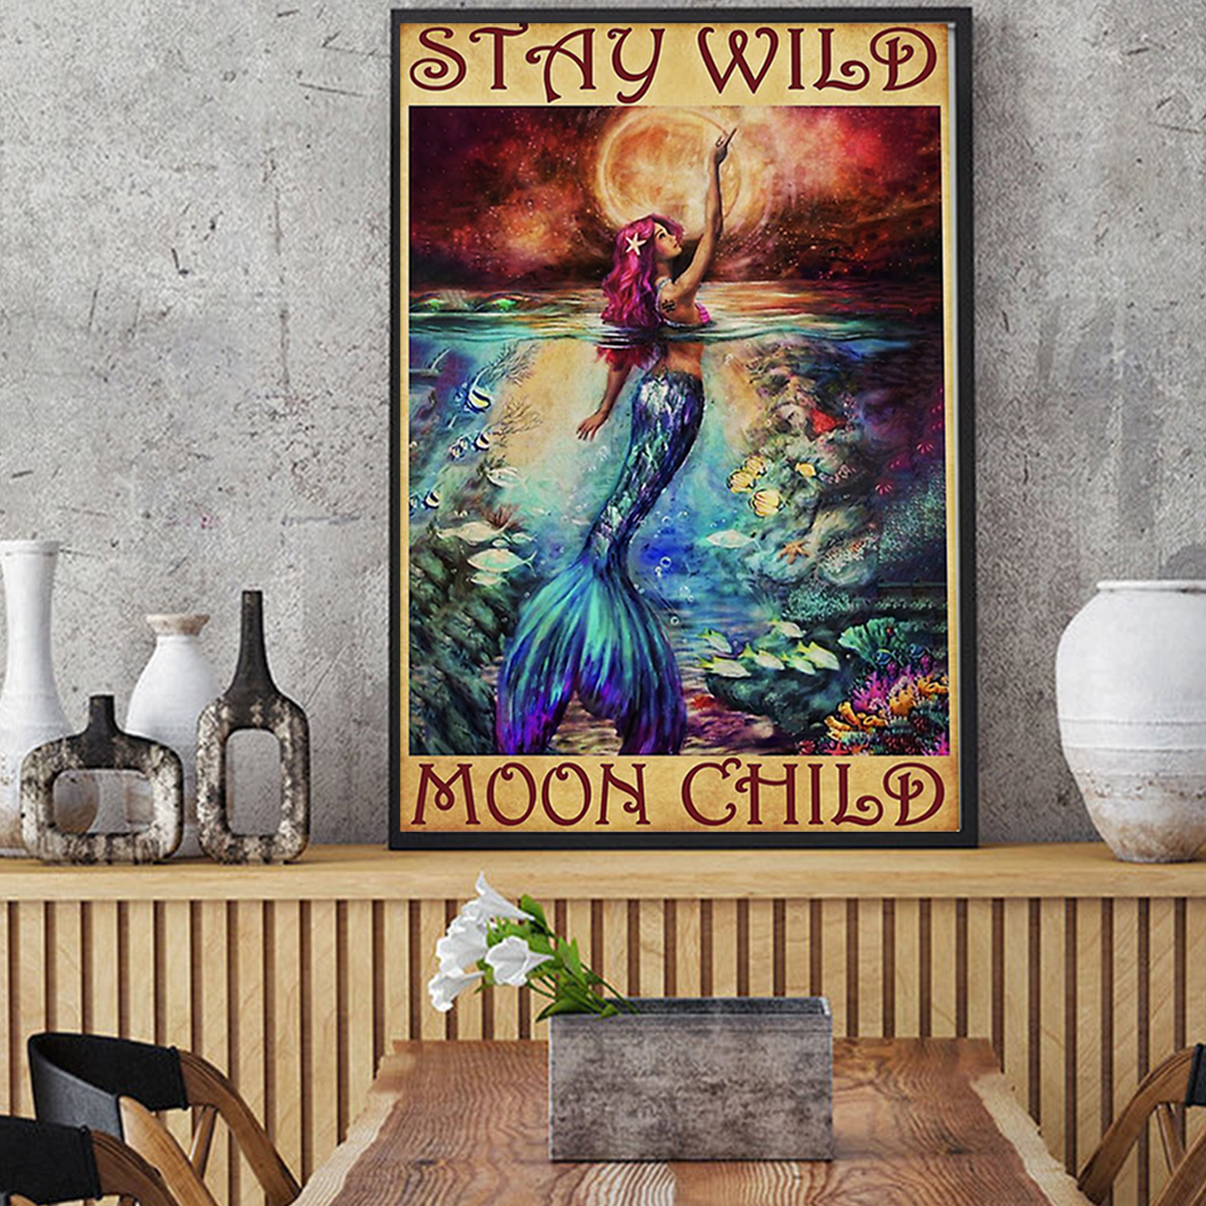 Mermaid stay wild moon child poster A3